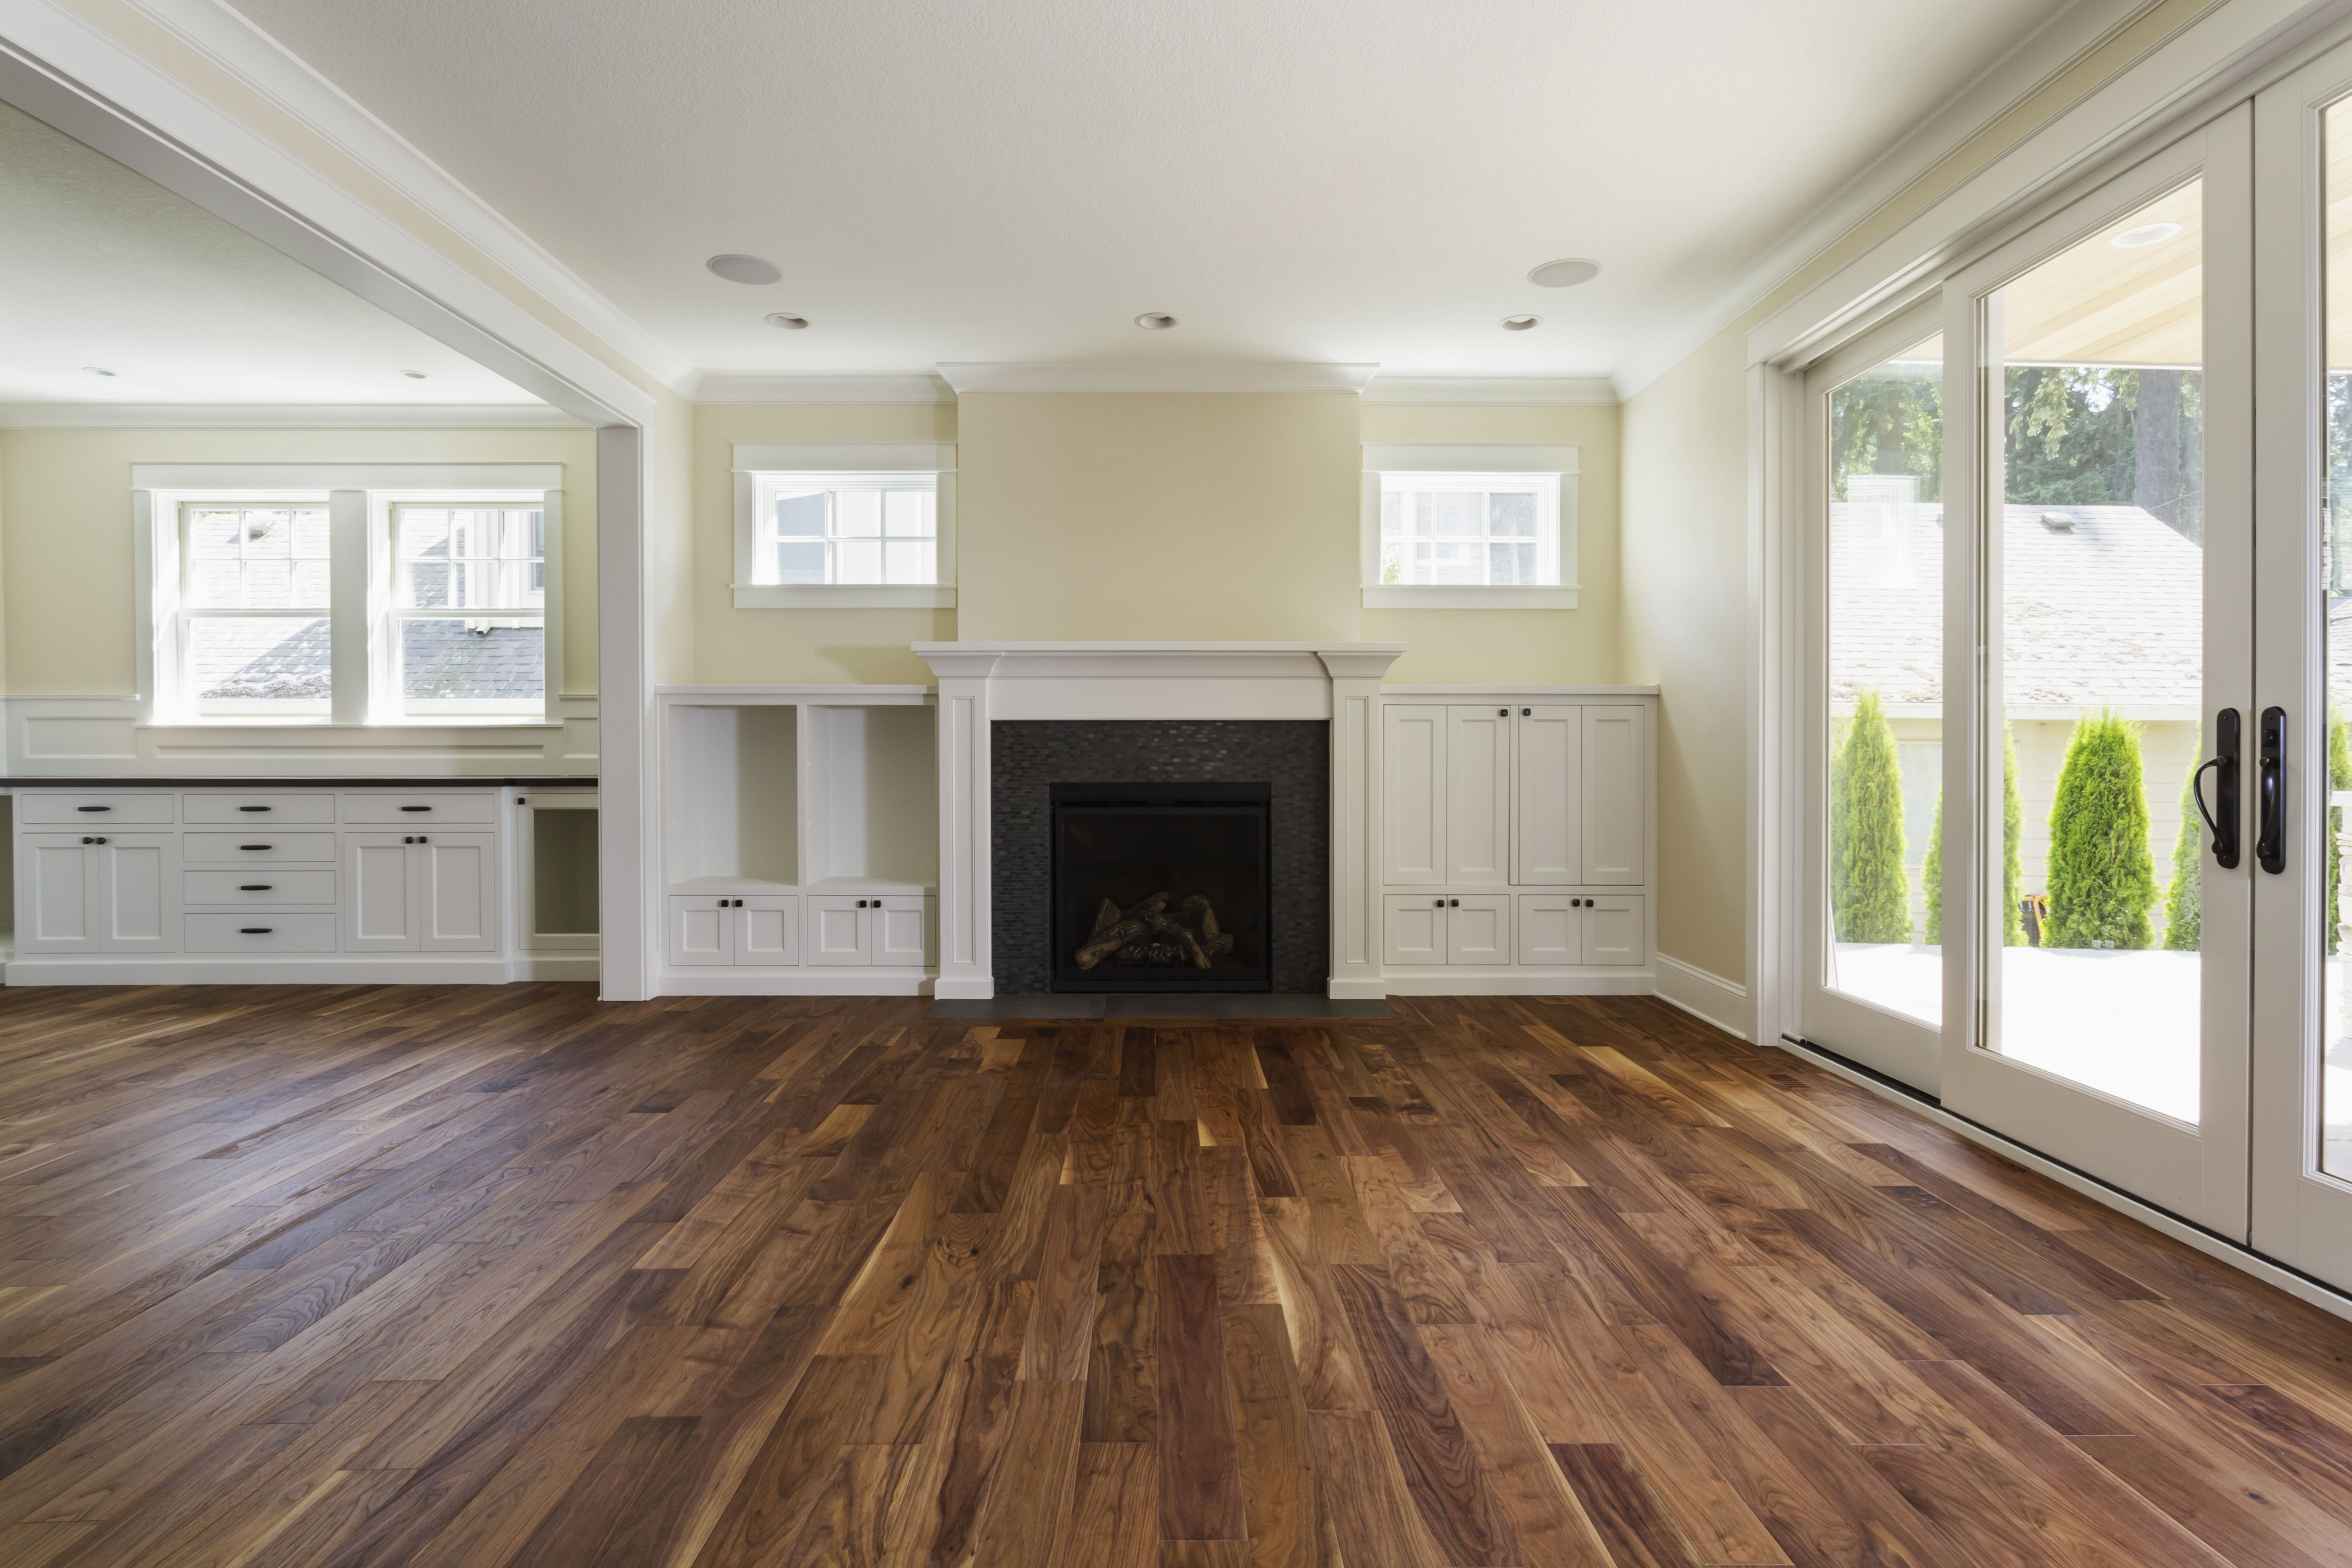 Best Hardwood Floor Stain Colors Of the Pros and Cons Of Prefinished Hardwood Flooring Pertaining to Fireplace and Built In Shelves In Living Room 482143011 57bef8e33df78cc16e035397